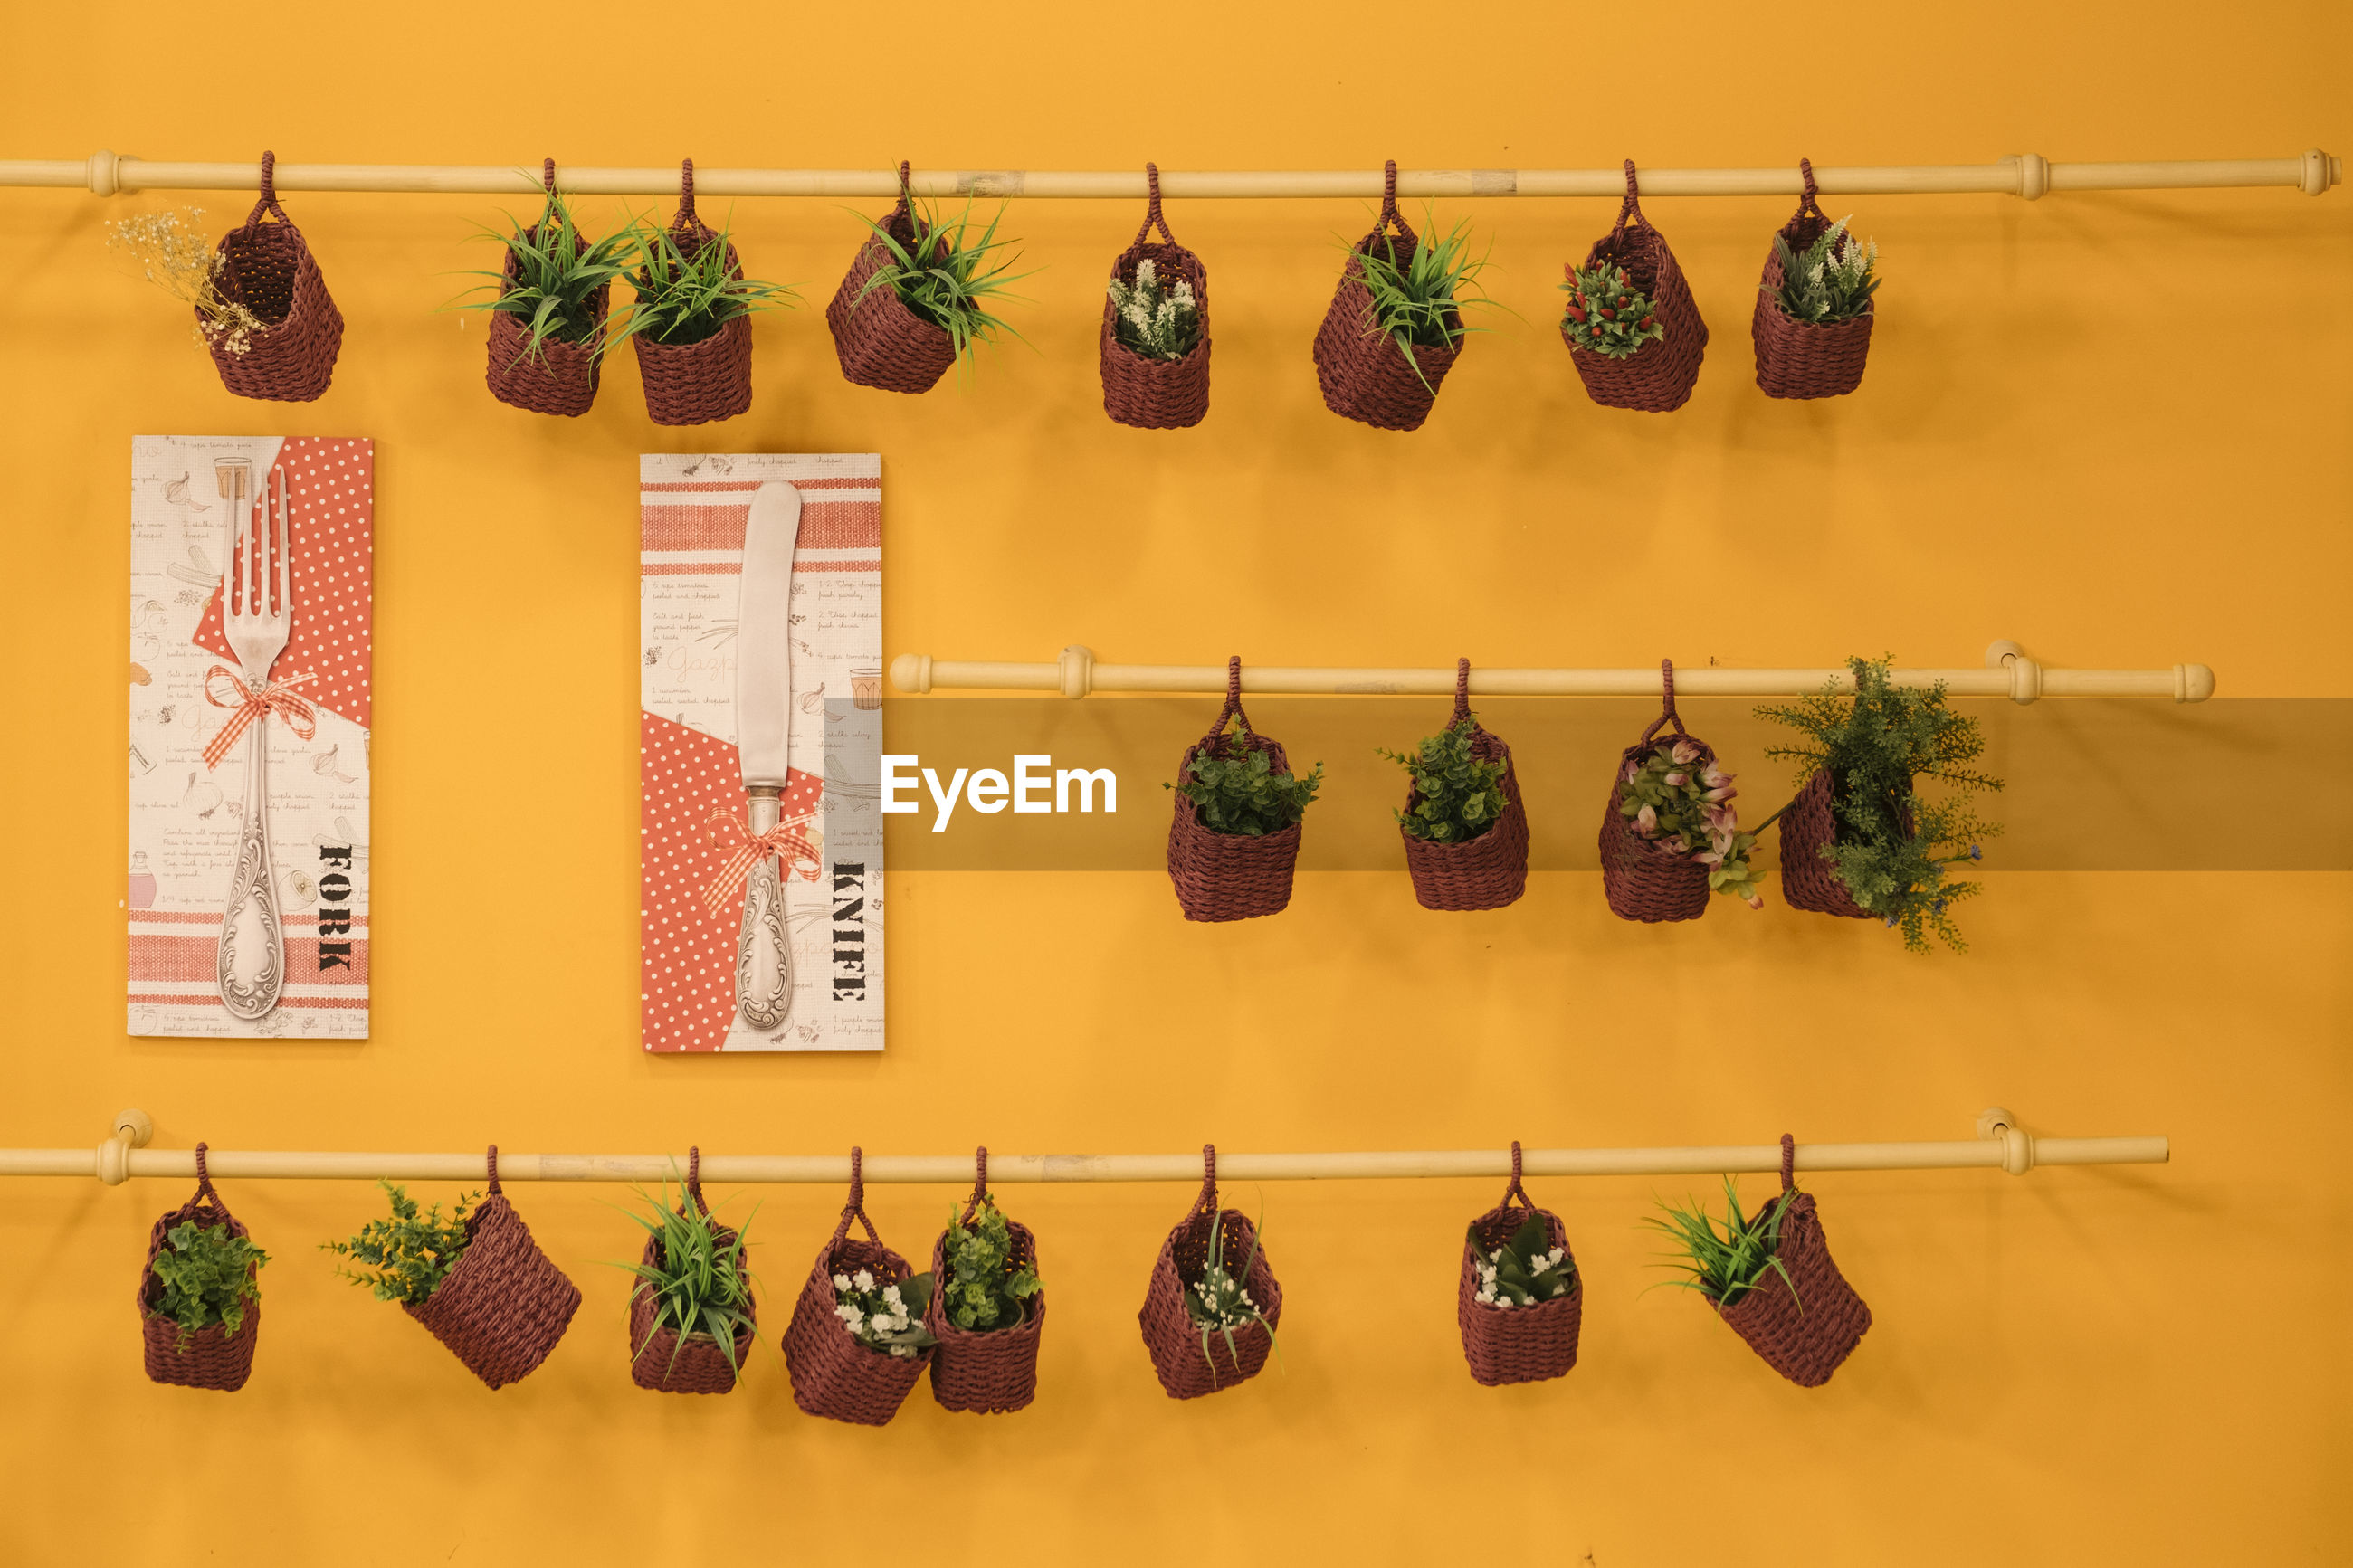 Potted plants hanging on metallic rods against yellow wall